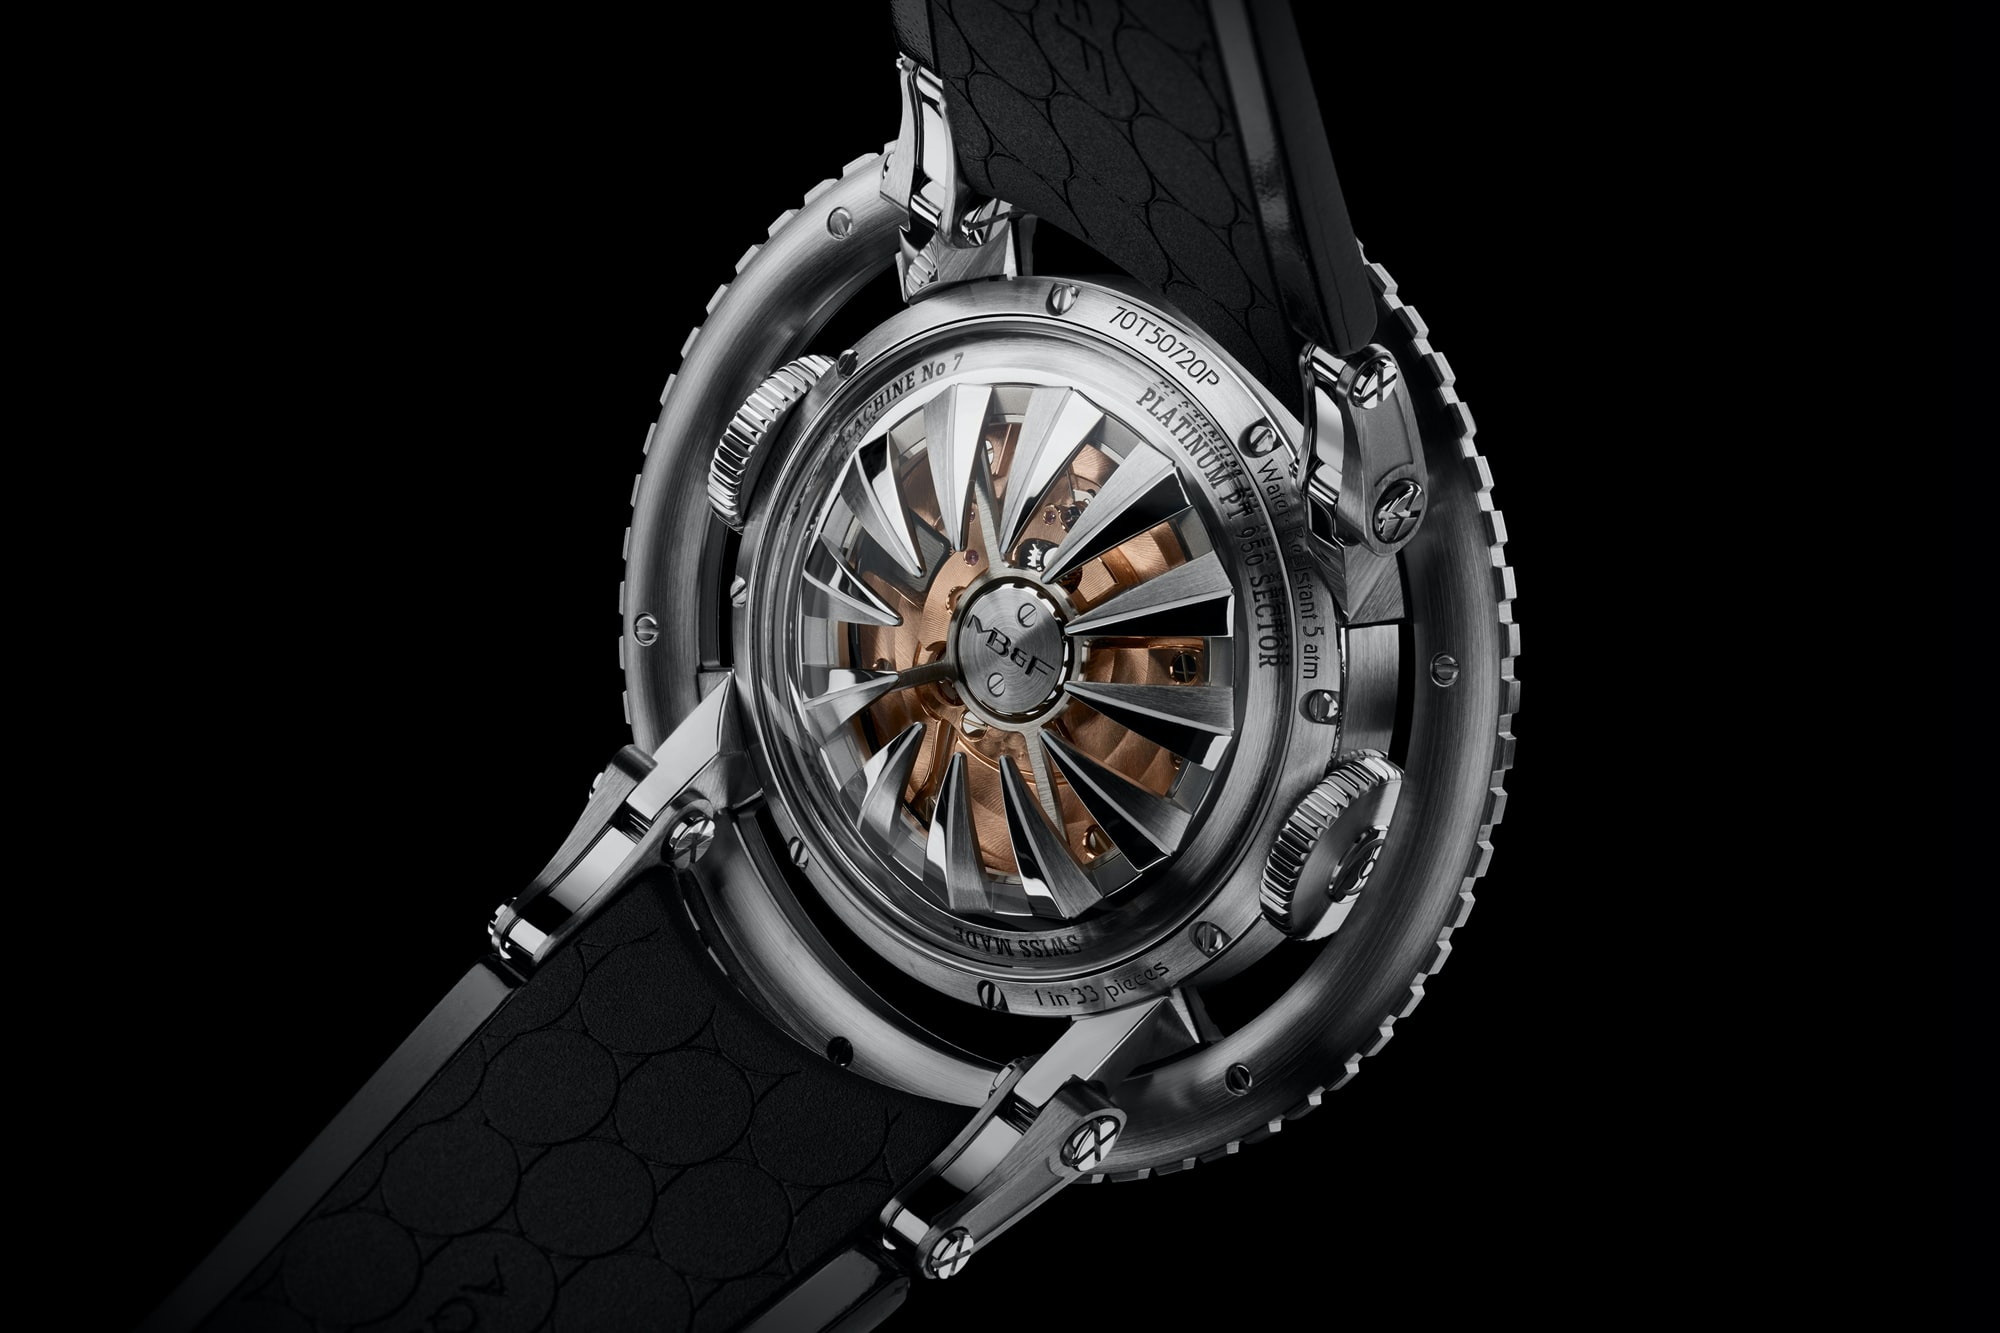 A glimpse of the movement through the sapphire caseback.